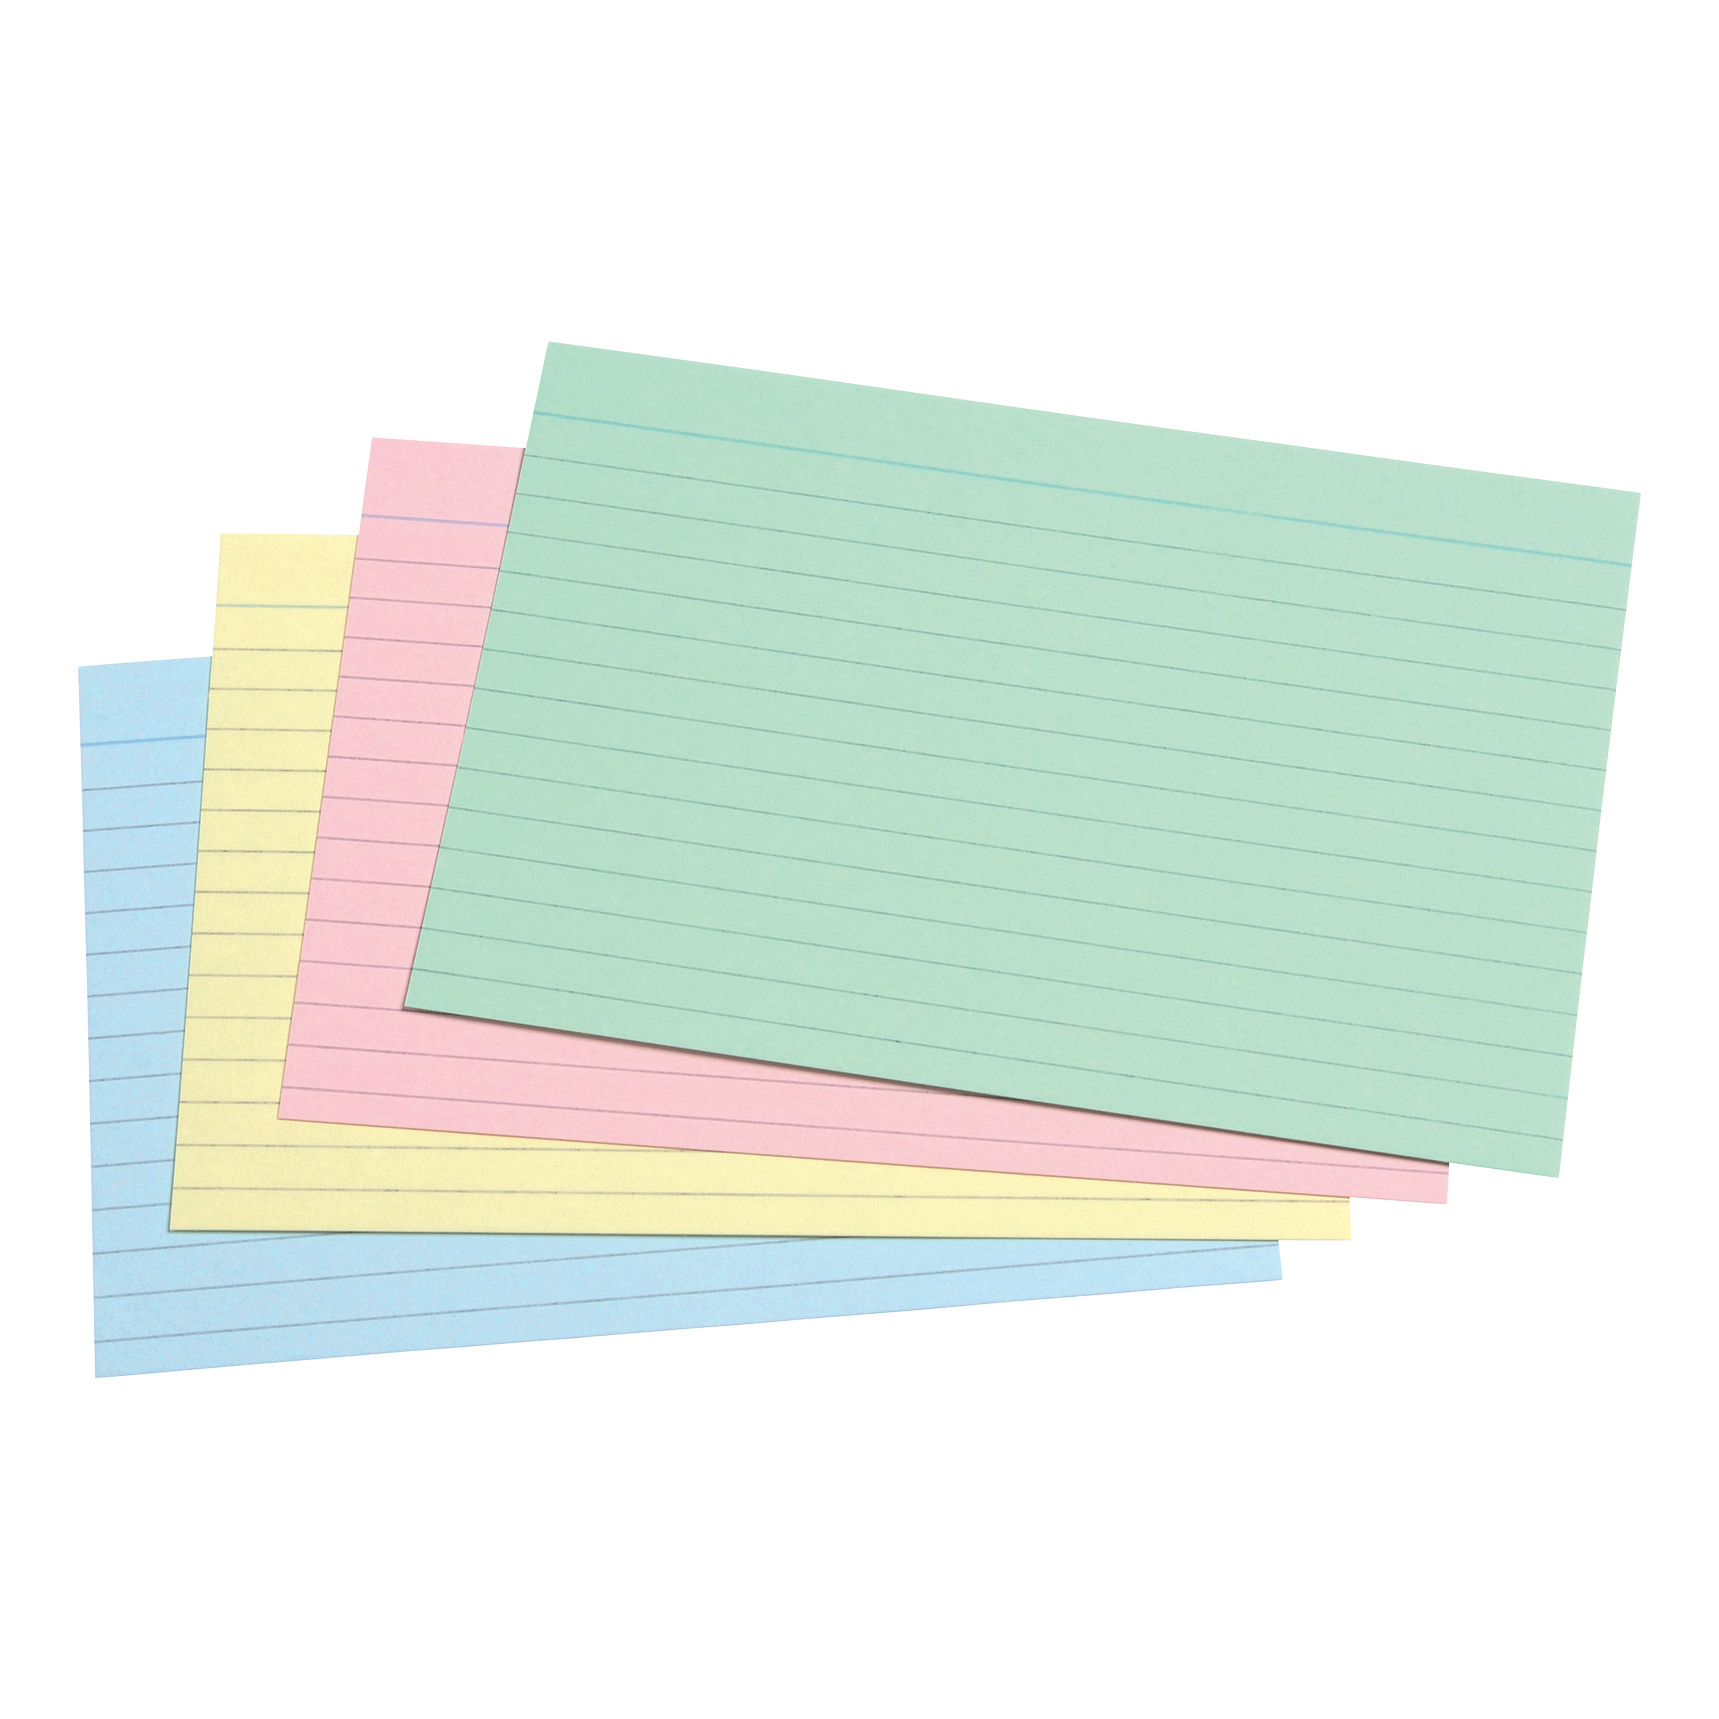 Record Cards 5 Star Office Record Cards Ruled Both Sides 6x4in 152x102mm Assorted Pack 100